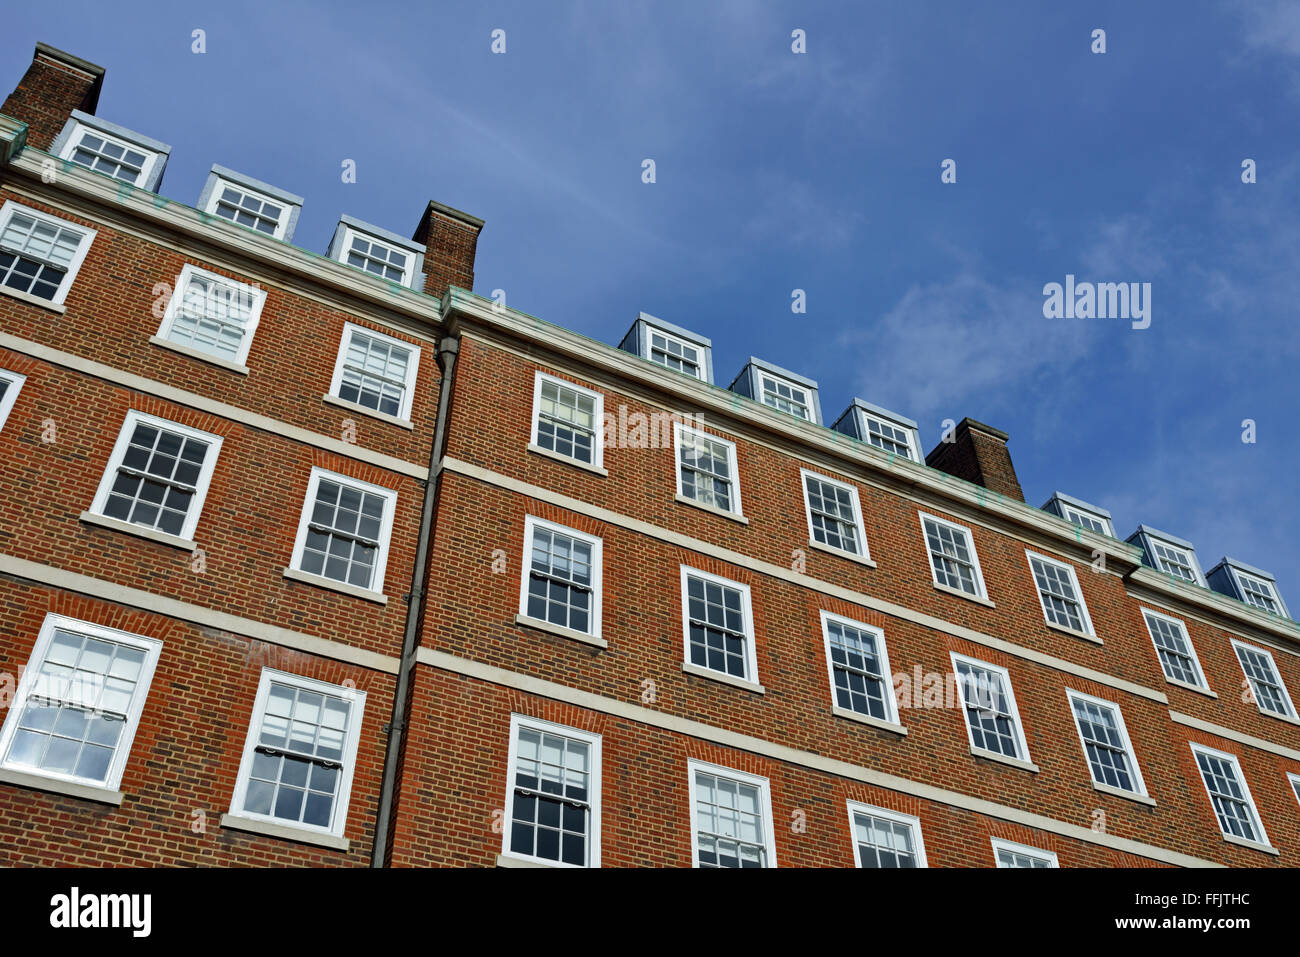 Pump Court, The Temple area, City of London, United Kingdom - Stock Image